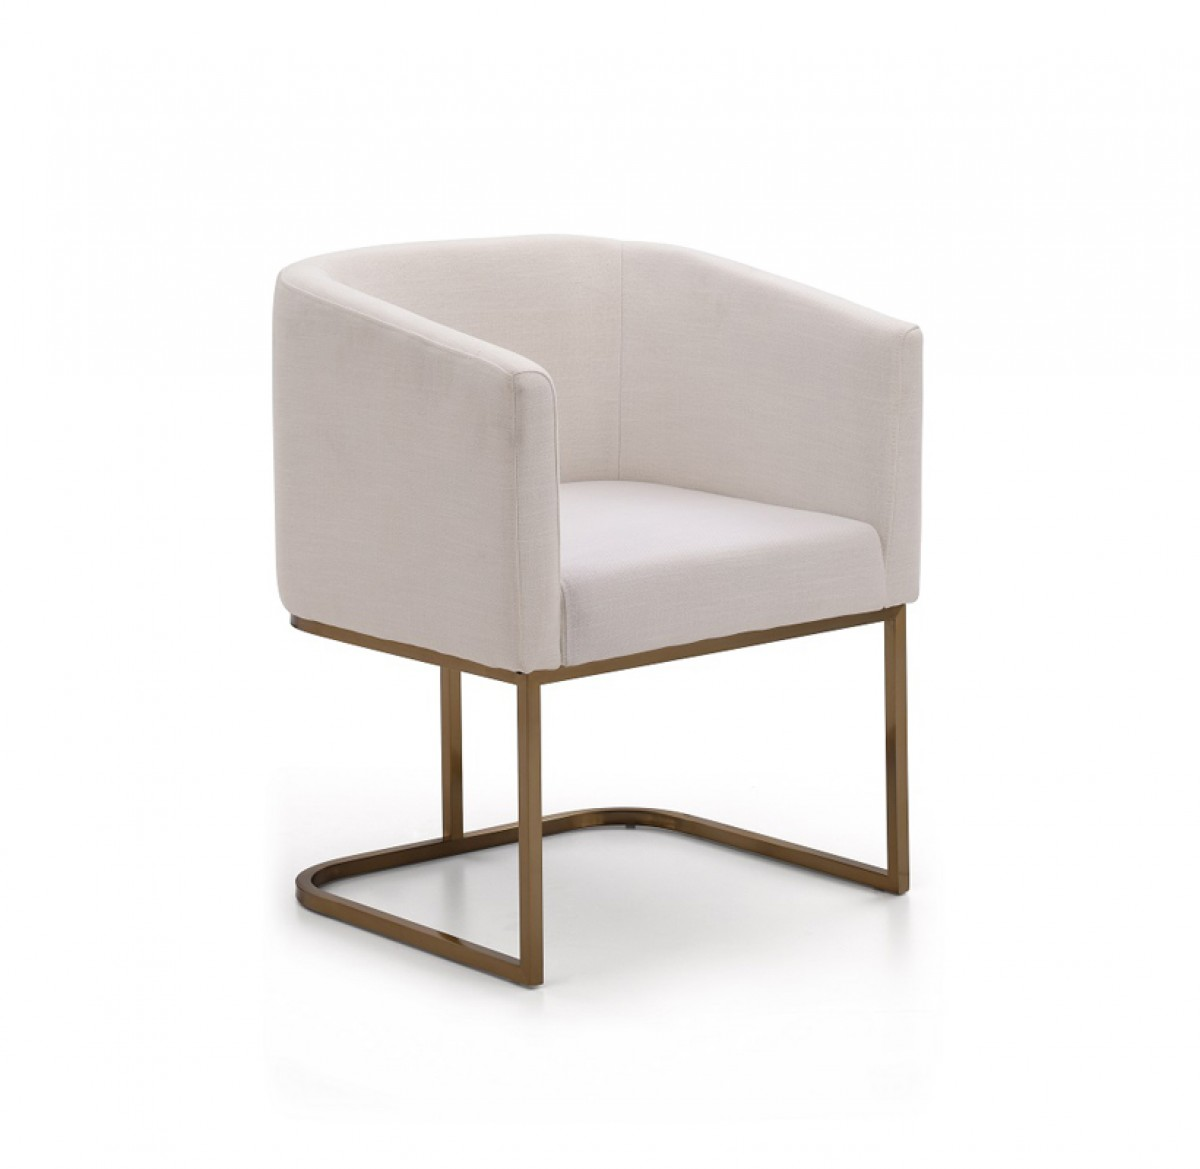 Modrest yukon modern white fabric and antique brass dining for Modern white dining room chairs